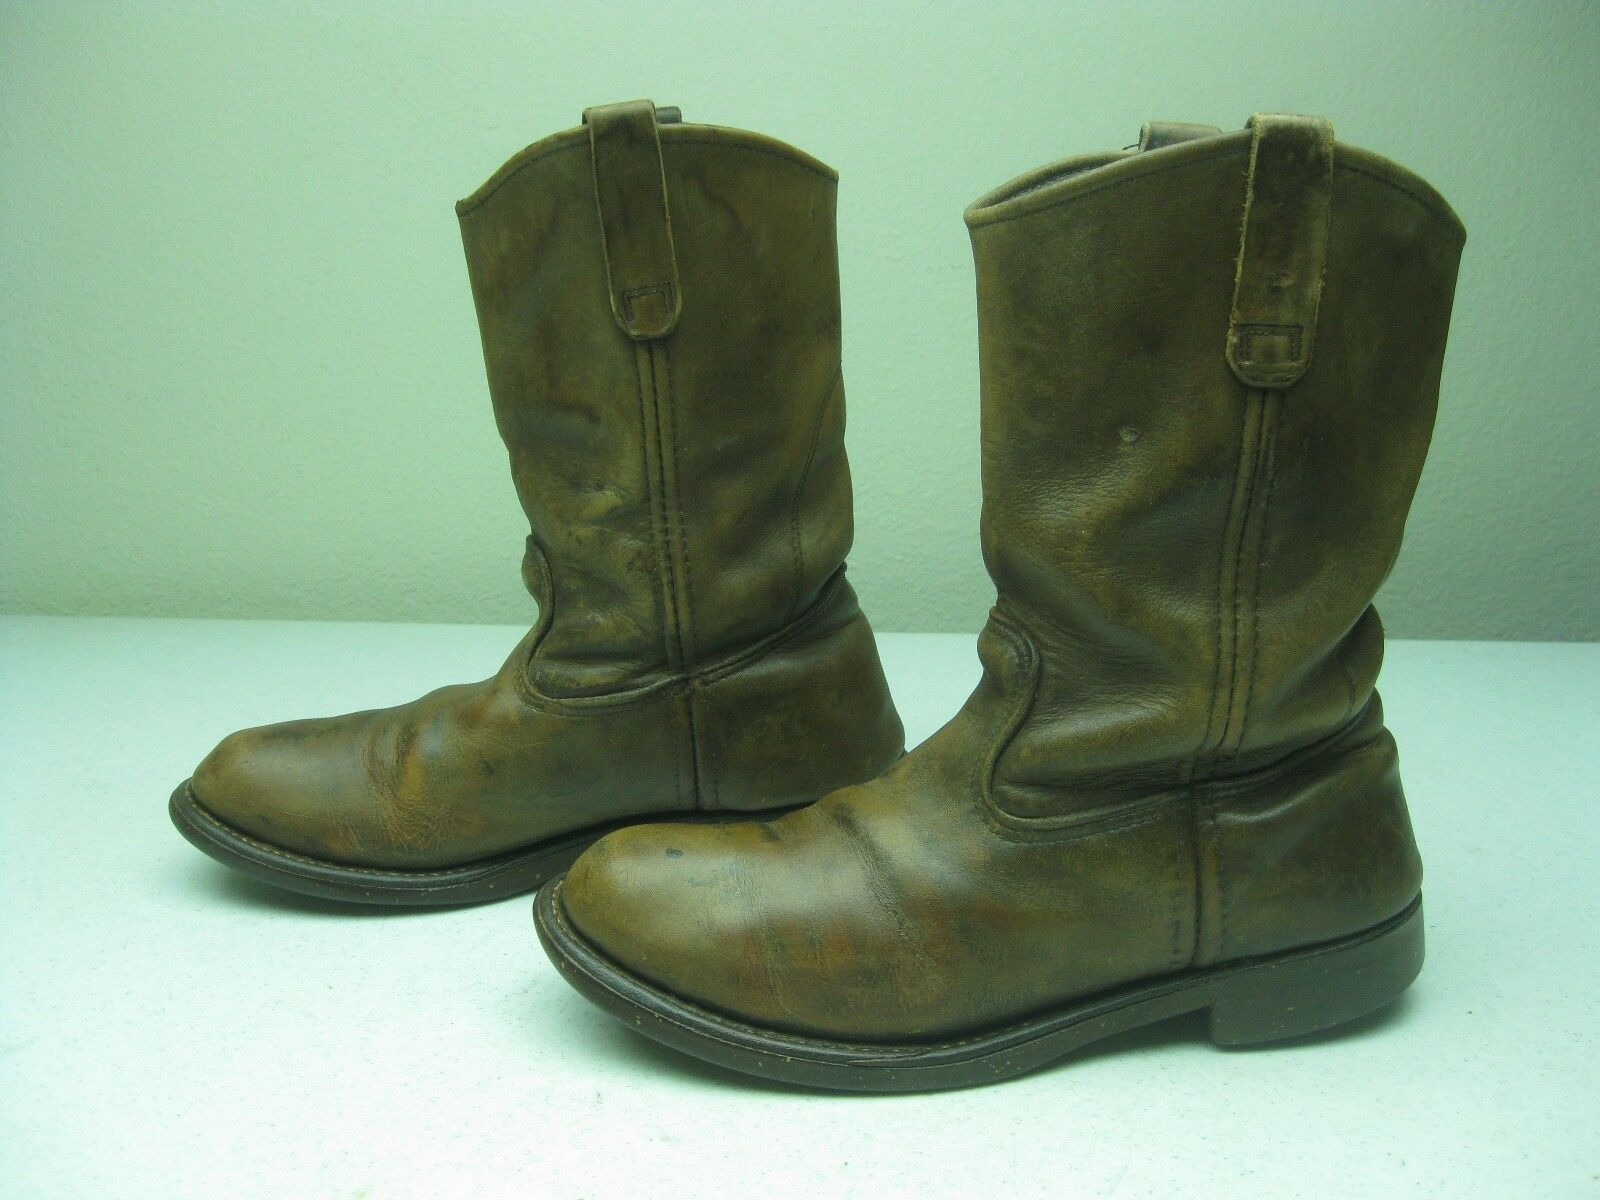 VINTAGE MADE IN USA rot WING braun LEATHER ENGINEER CORK WORK Stiefel Größe 7.5 D